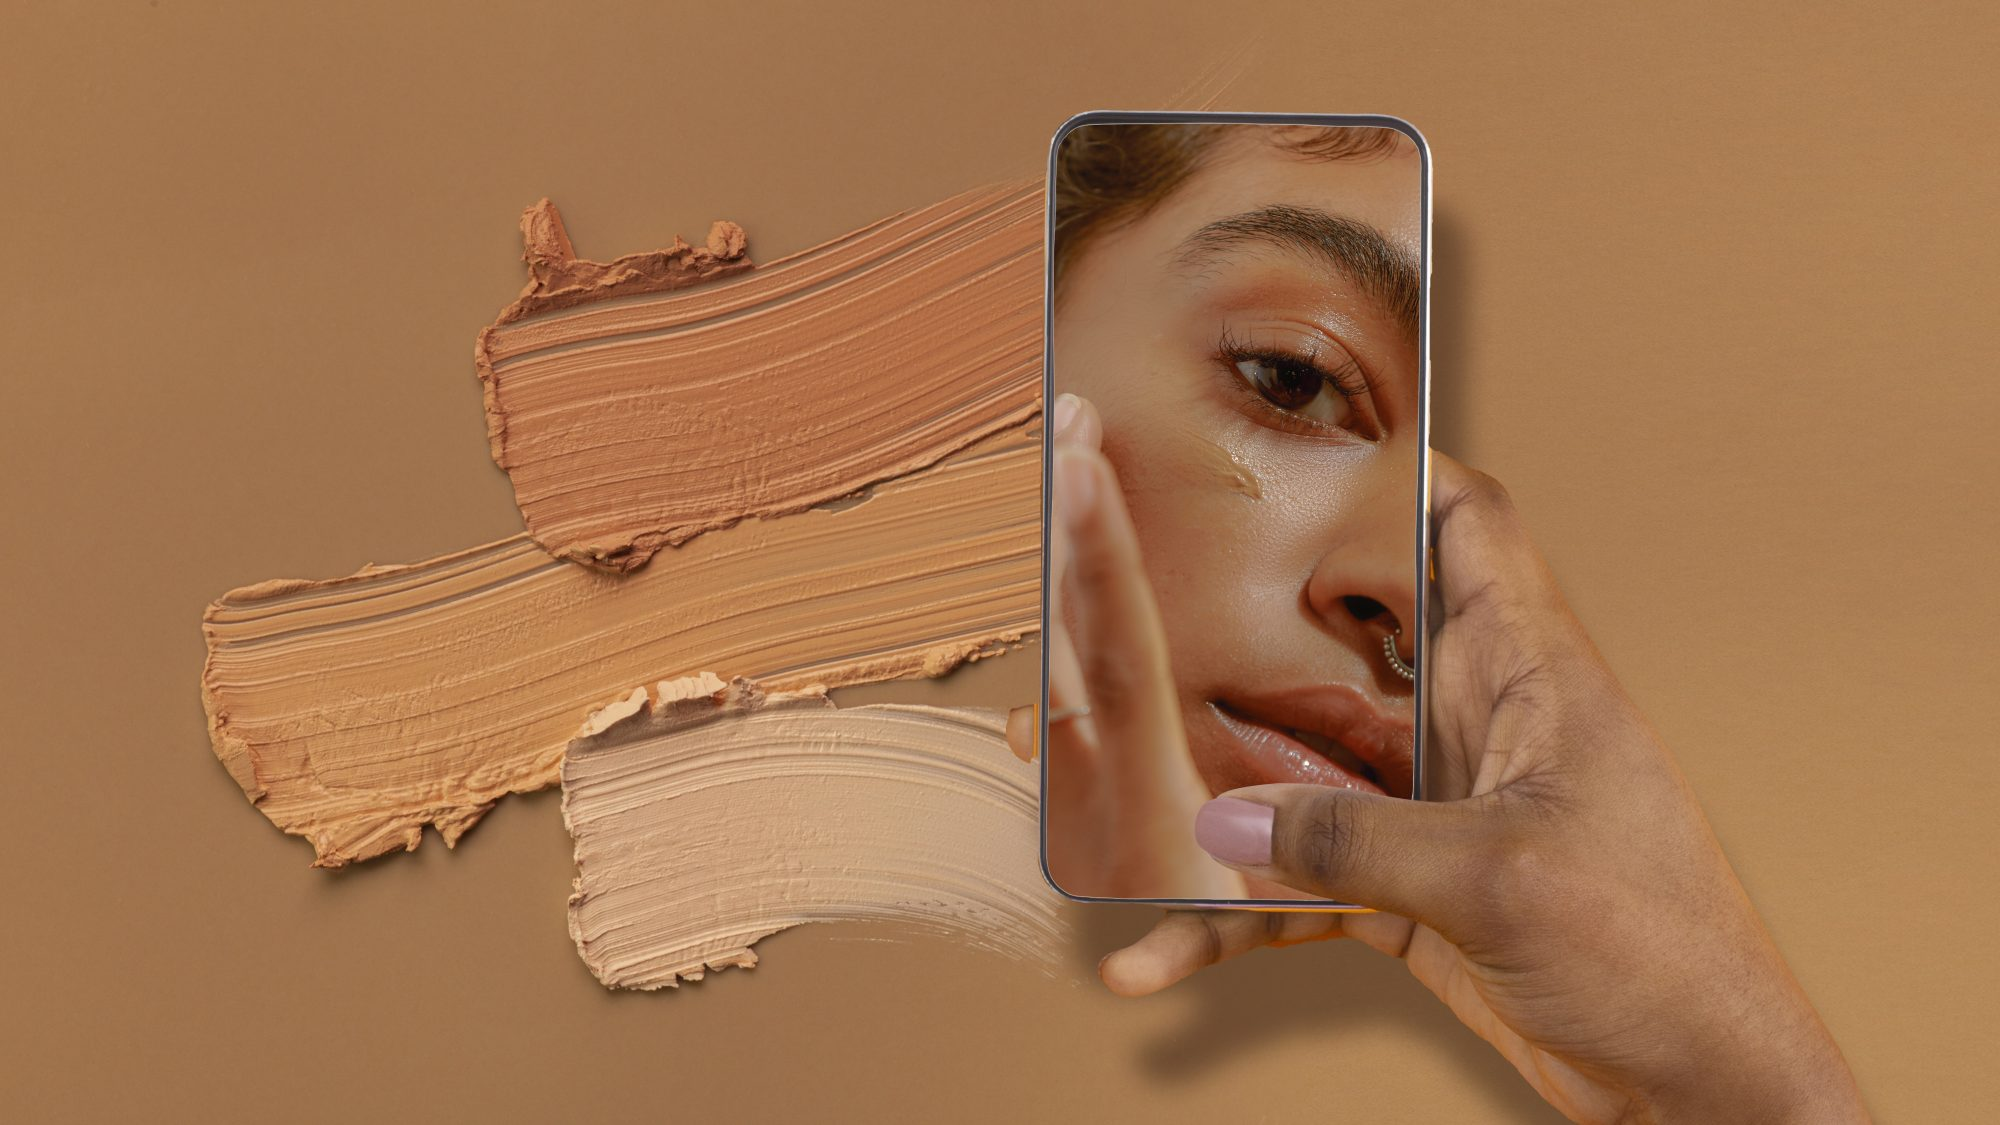 foundation-color-match: woman looking at herself on cell phone